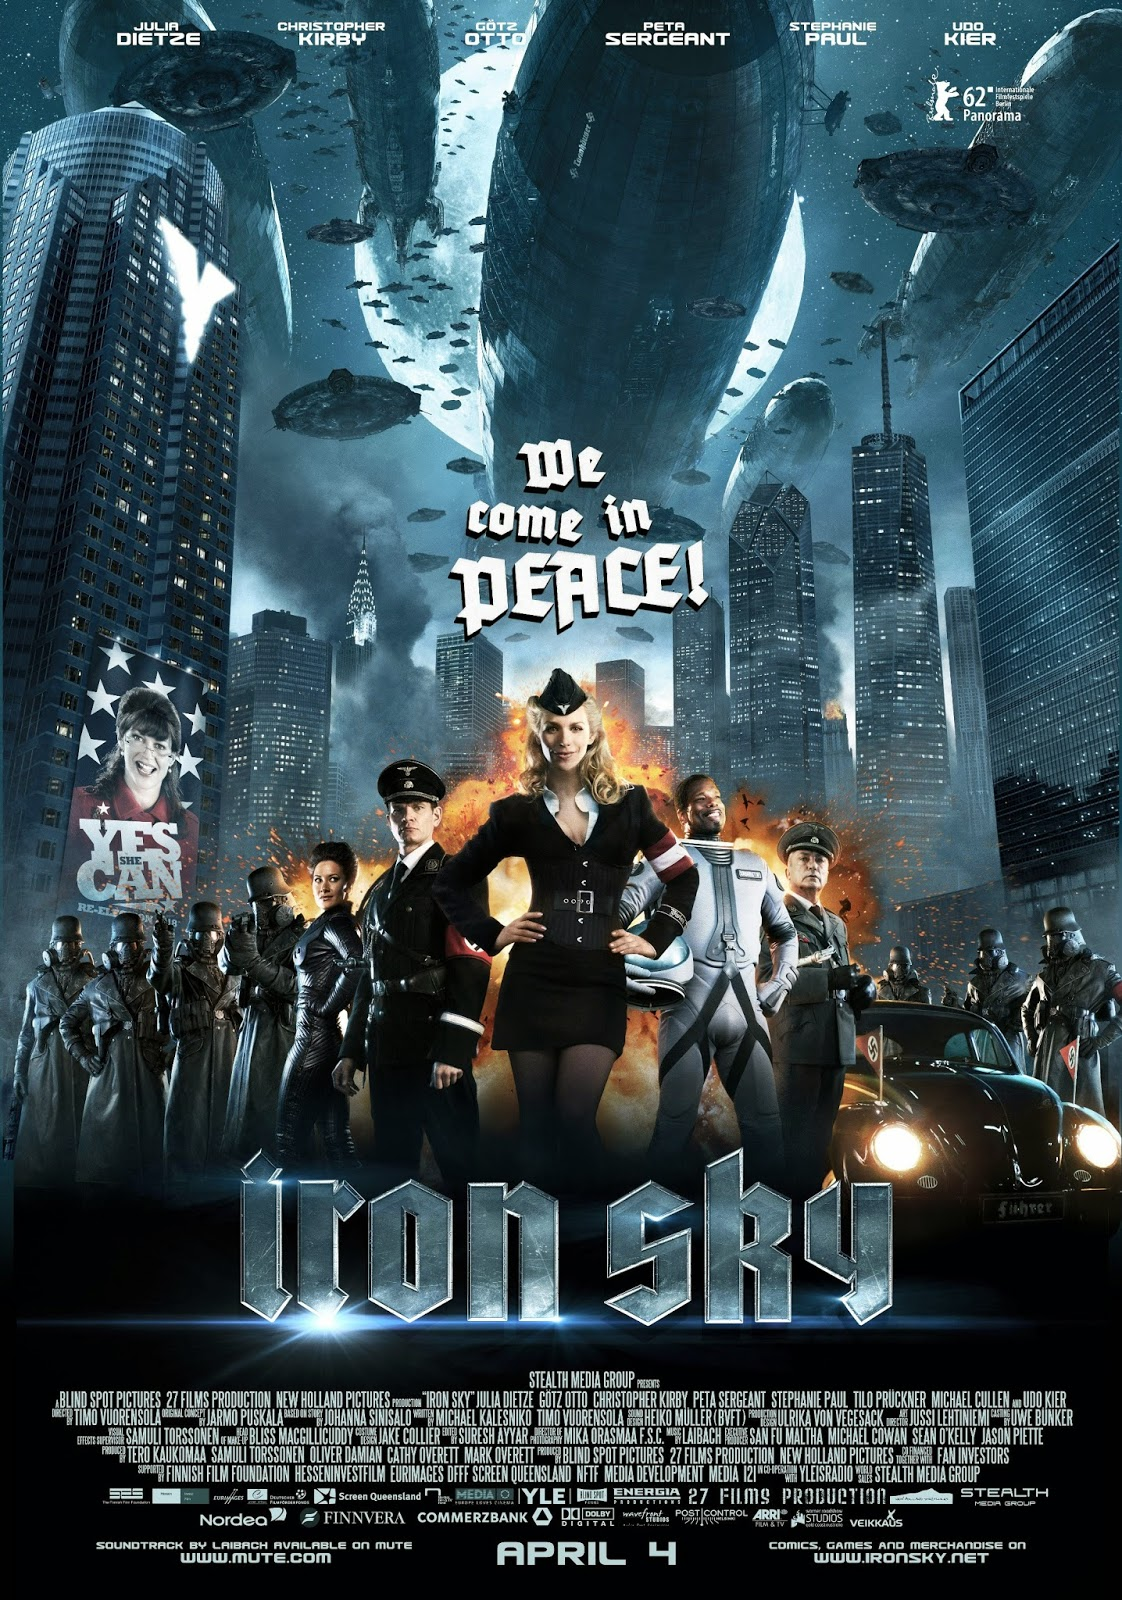 Film Trailers World Custom E Money Flazz Dan Brizzi Card Design Thor 1 Iron Sky